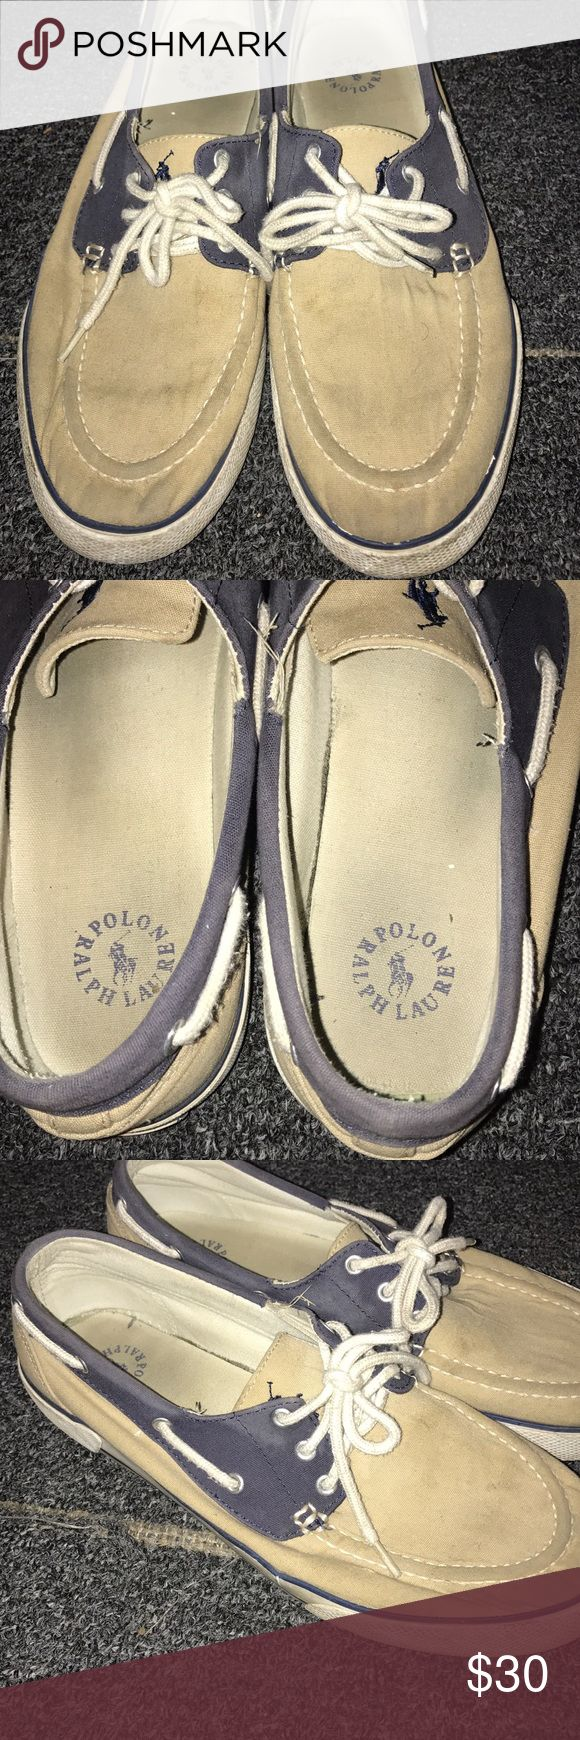 Polo Ralph Lauren Boat Shoe Polo Ralph Lauren Boat Shoes. They are a cream color with blue trim. In perfect condition for only being worn a couple of times. No issues or rips on them. Perfect Price! Shoes Boat Shoes